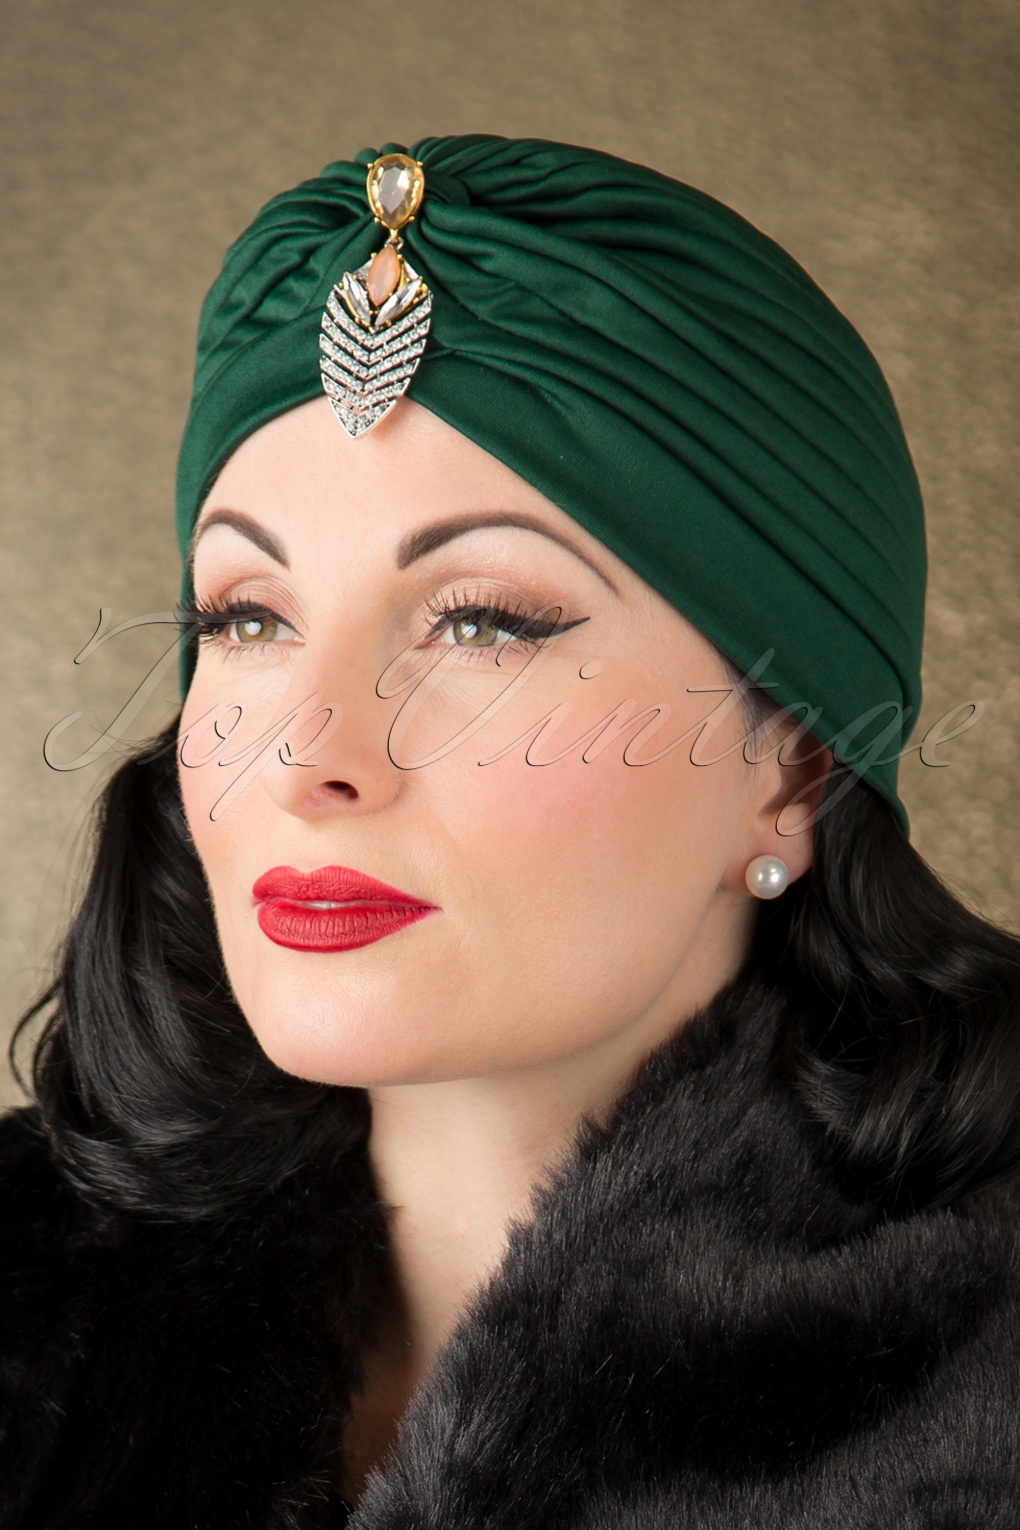 Downton Abbey Costumes Ideas 50s Sally Sateen Turban Hat in Green £8.24 AT vintagedancer.com